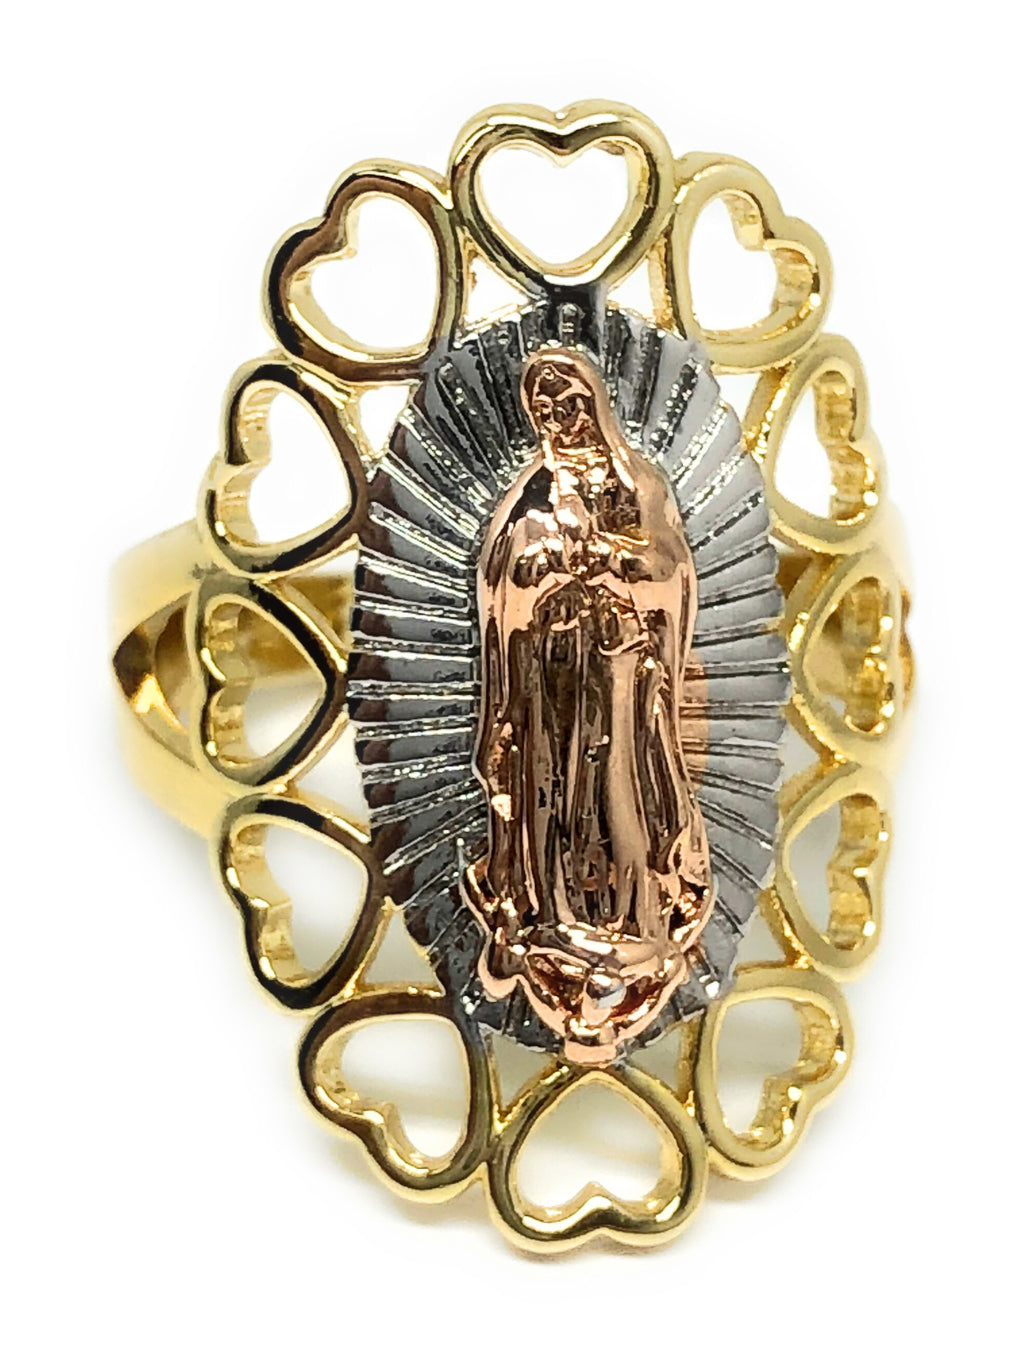 Tri-Color Gold Plated Virgin Mary Heart Ring Virgen De Guadalupe Corazon Anillo Tres Colores - Fran & Co. Jewelry